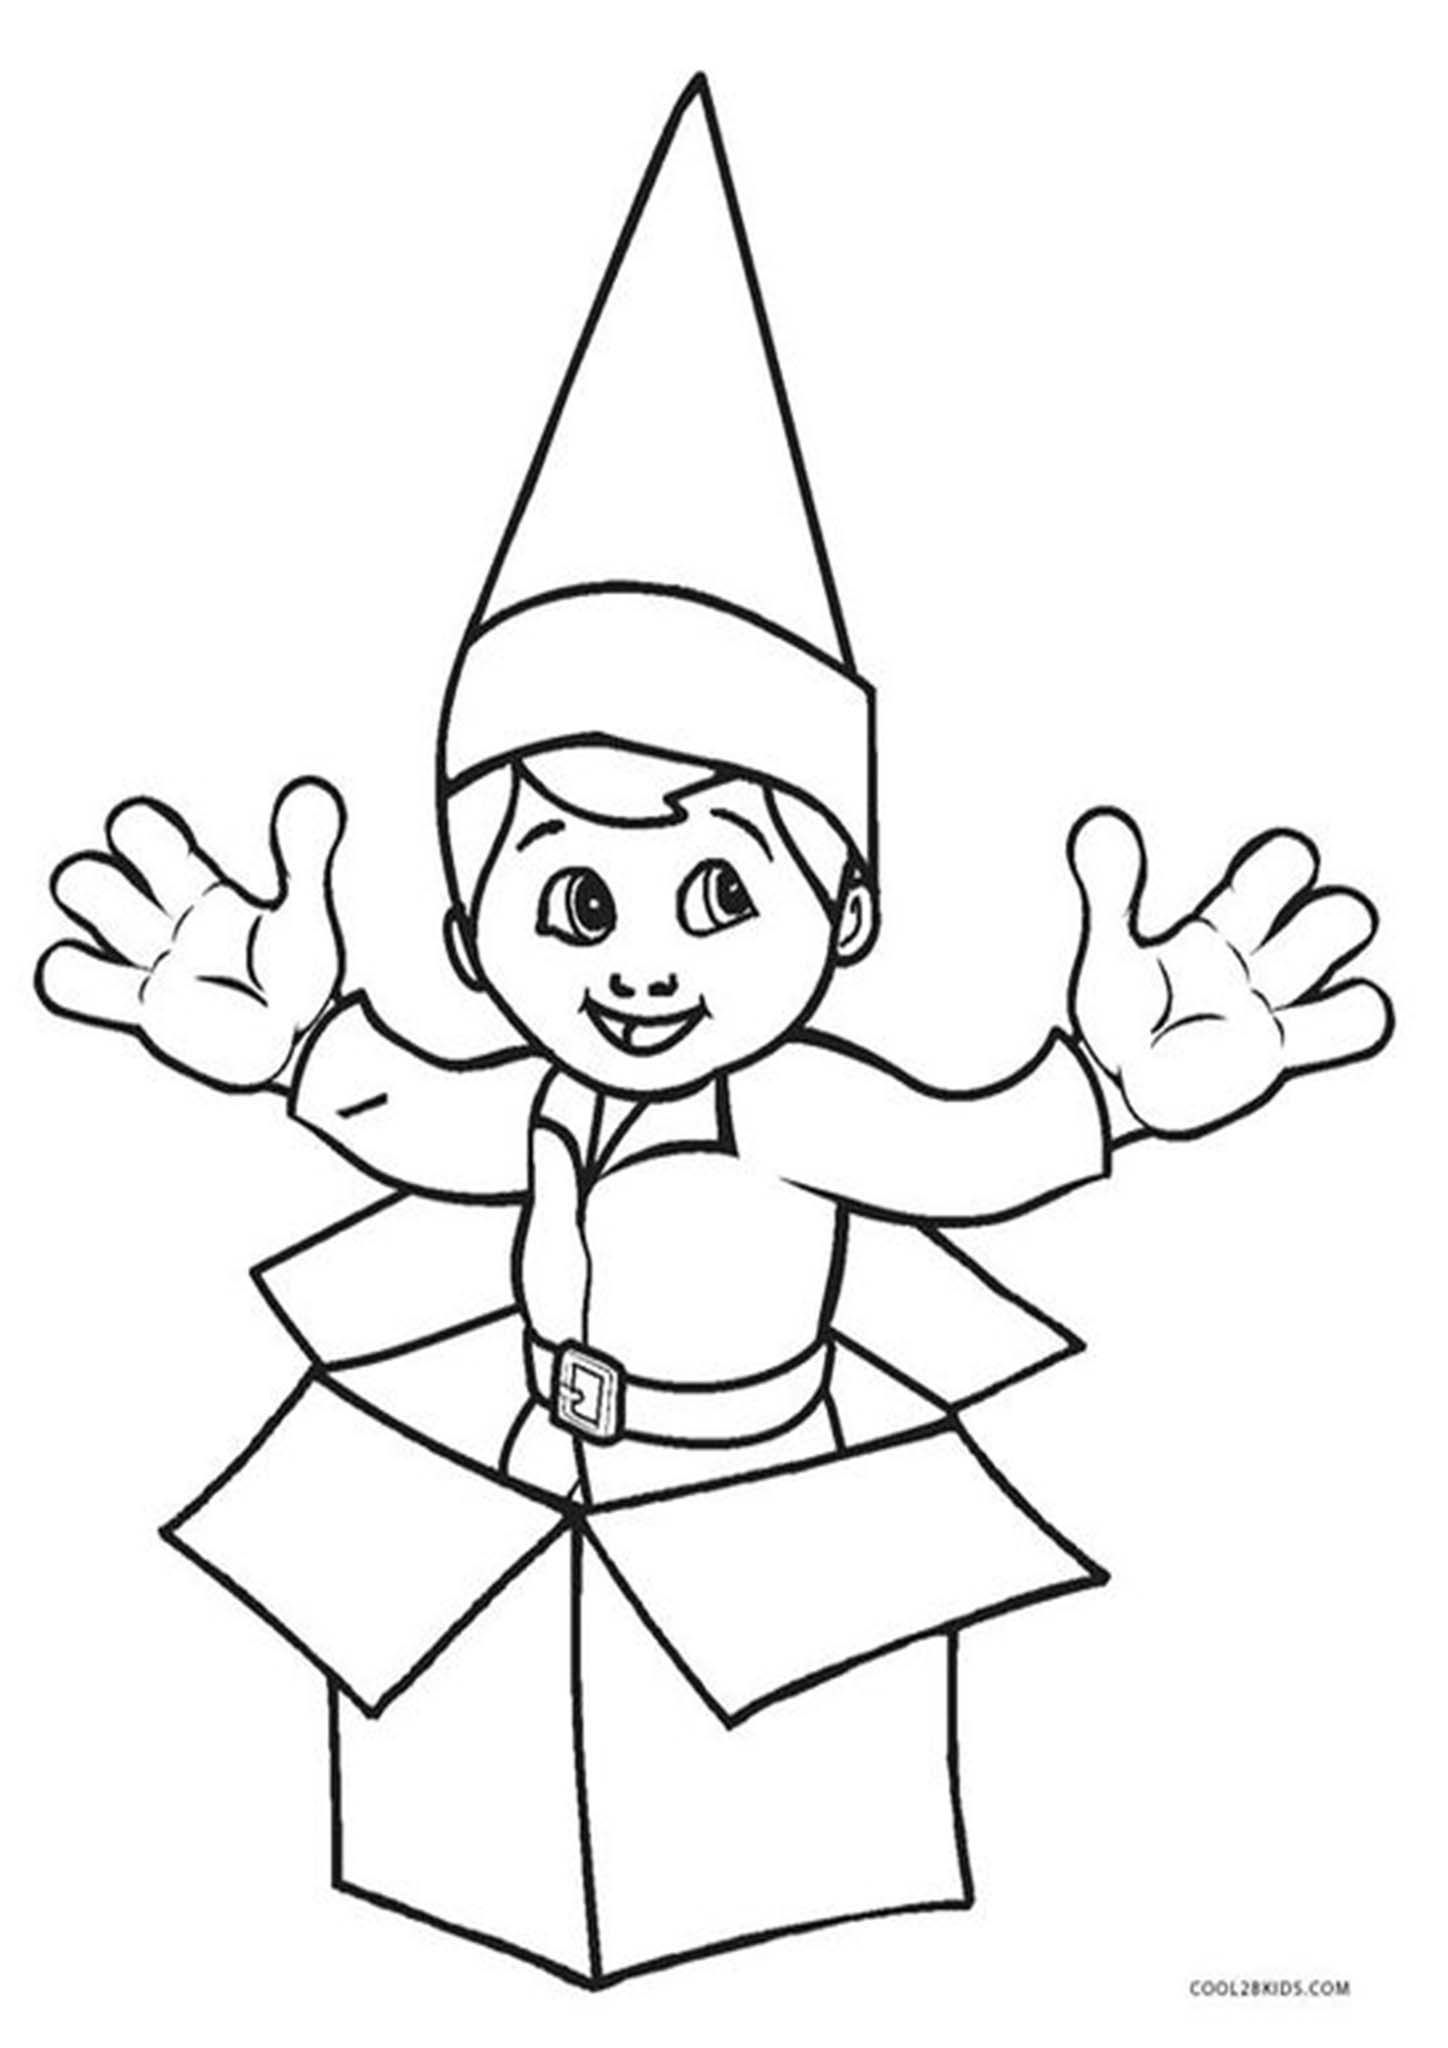 Free Printable Elf On The Shelf Coloring Pages Printable Christmas Coloring Pages Merry Christmas Coloring Pages Christmas Coloring Pages